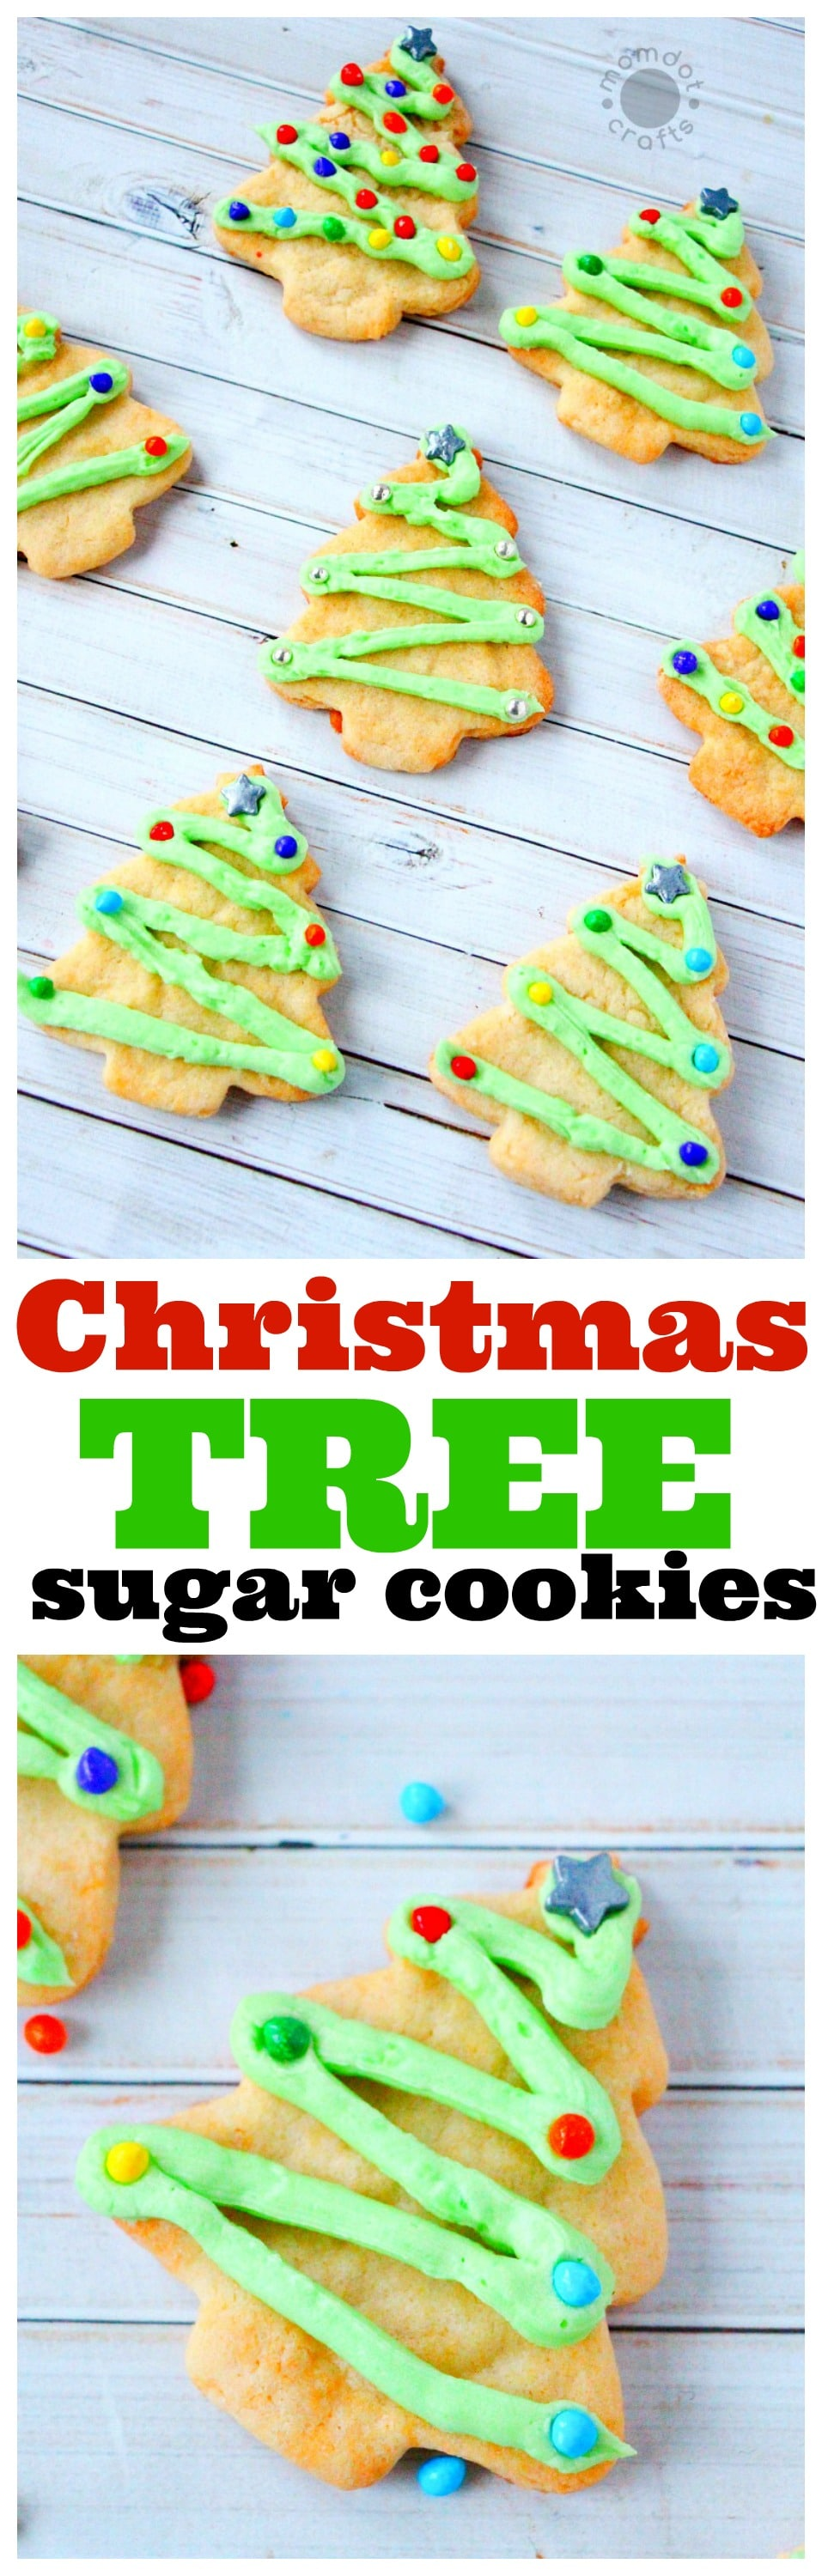 Christmas Tree Sugar Cookies, great sugar cookie recipe for adorable and easy to decorate Christmas cookies